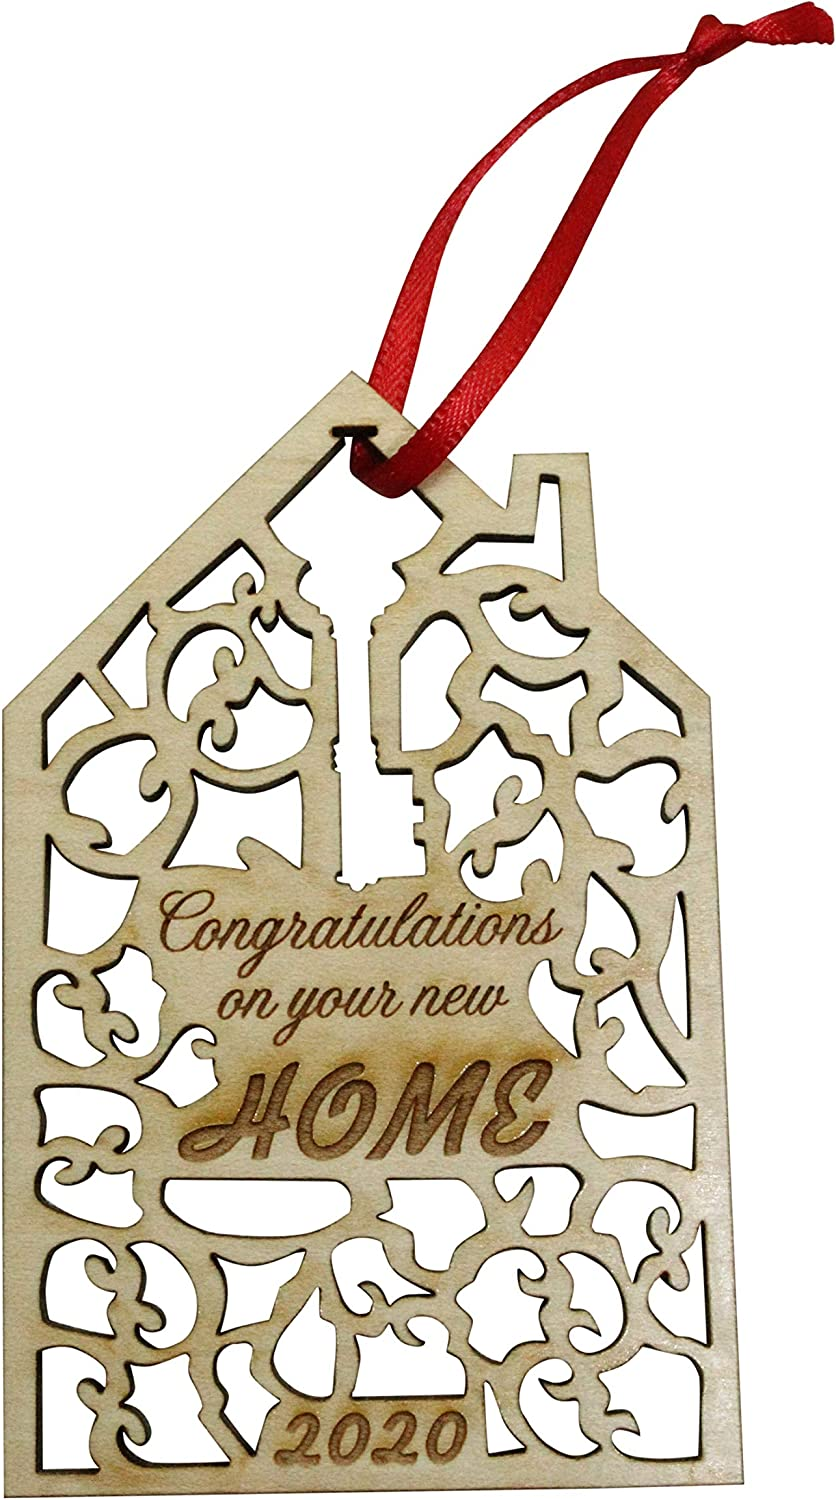 Twisted Anchor Trading Co 2020 Congratulations On Your New Home Ornament, Realtor Ornament New House Ornament Wood Laser Cut